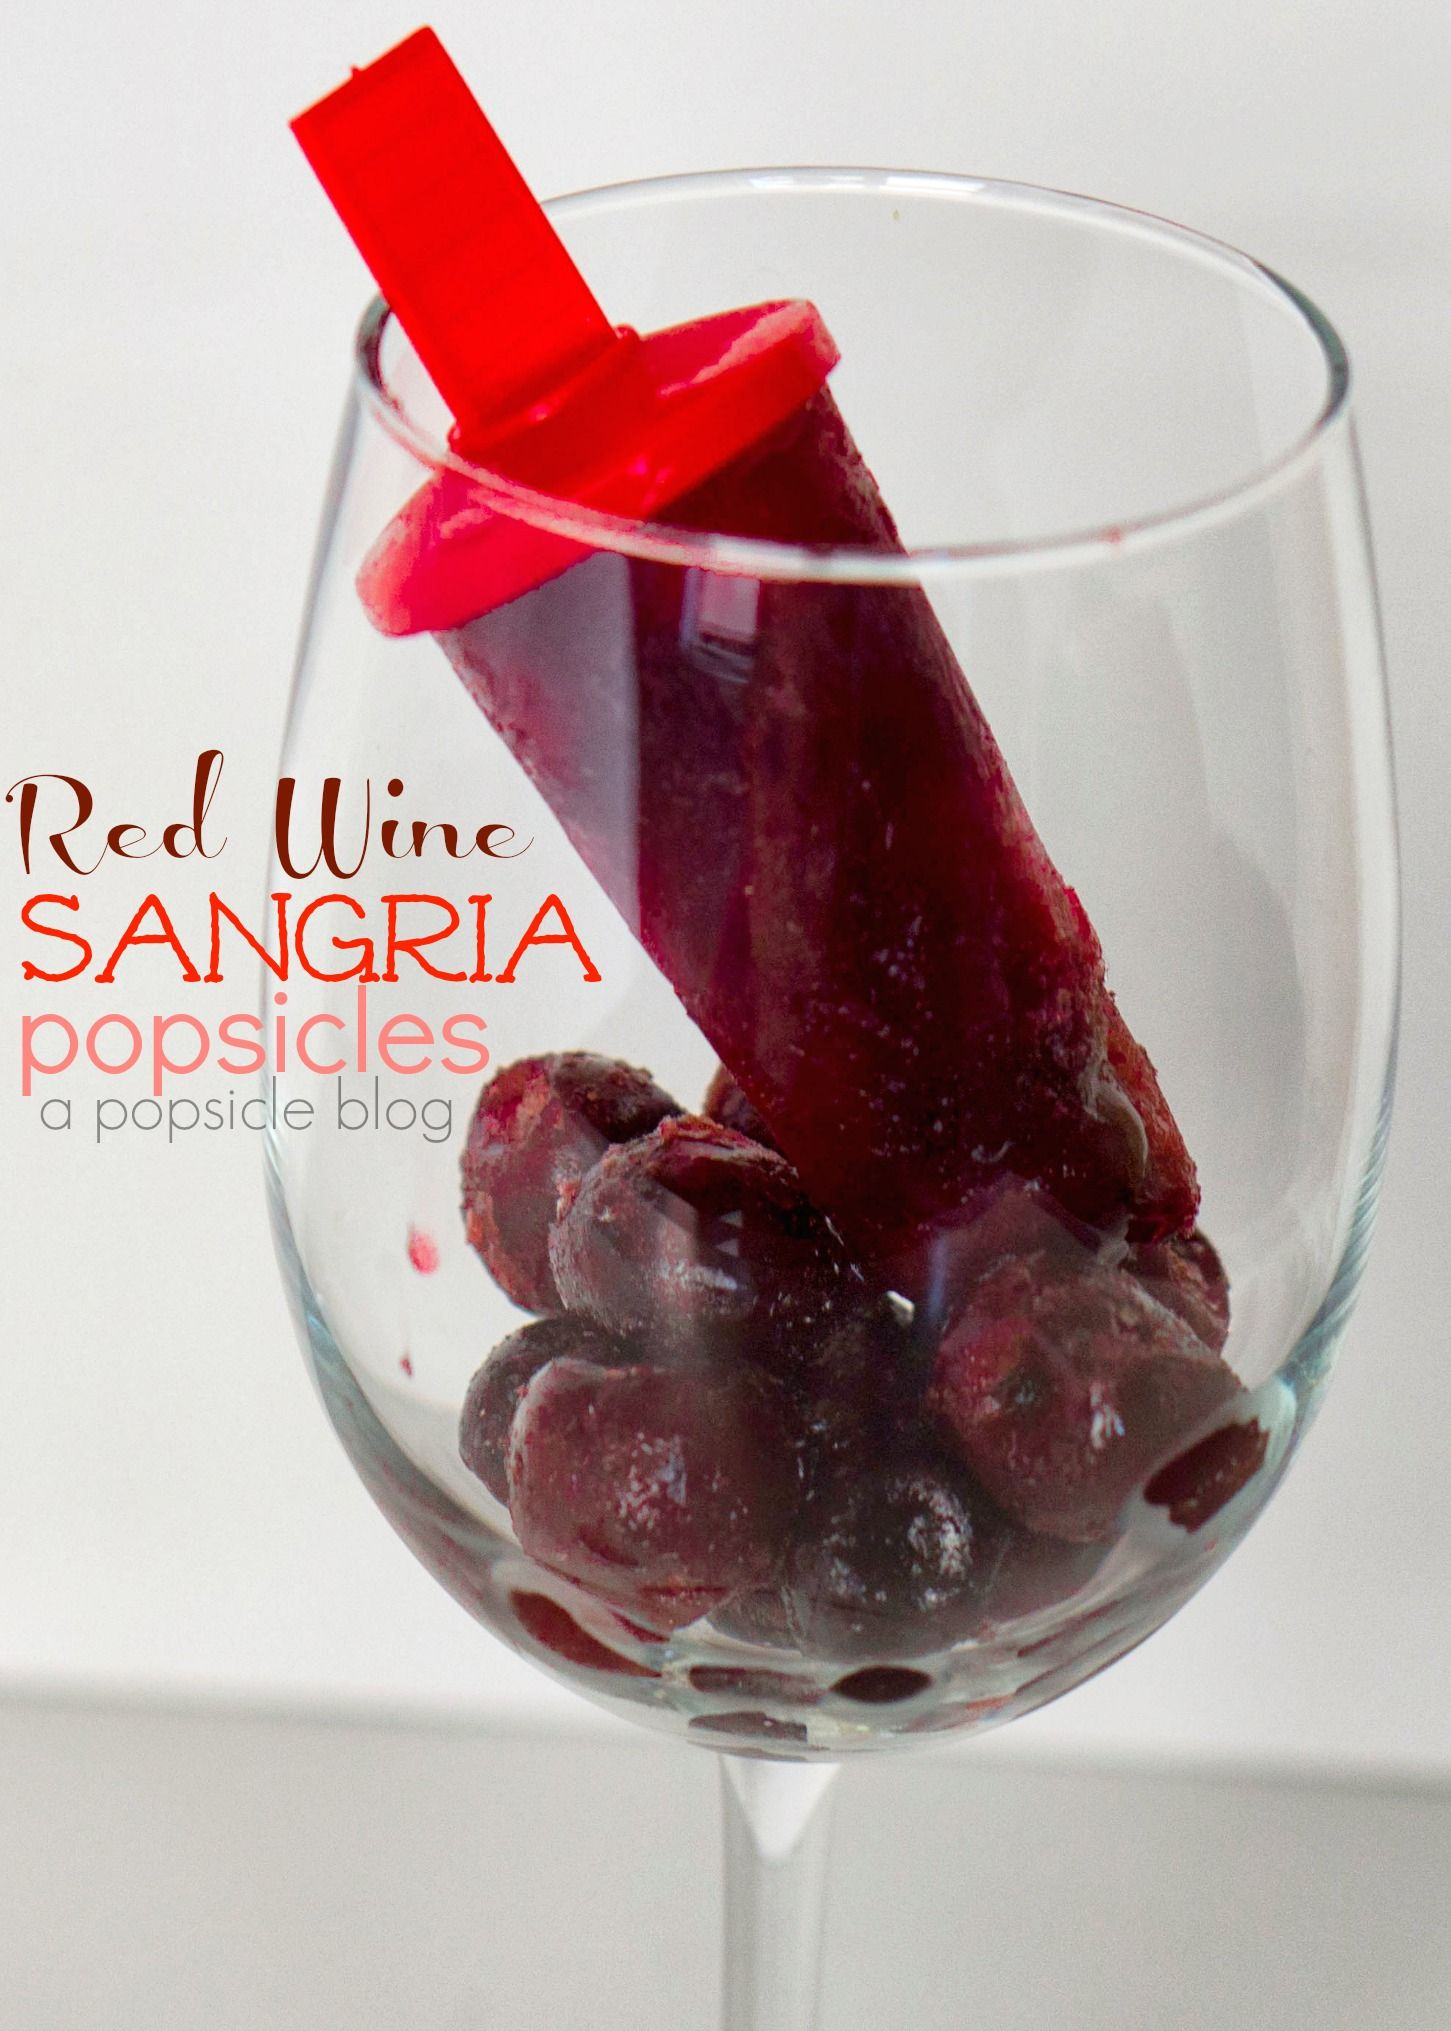 Red Wine Sangria Popsicles Recipe Recipe Red Wine Sangria Popsicle Recipes Sweet Red Wines